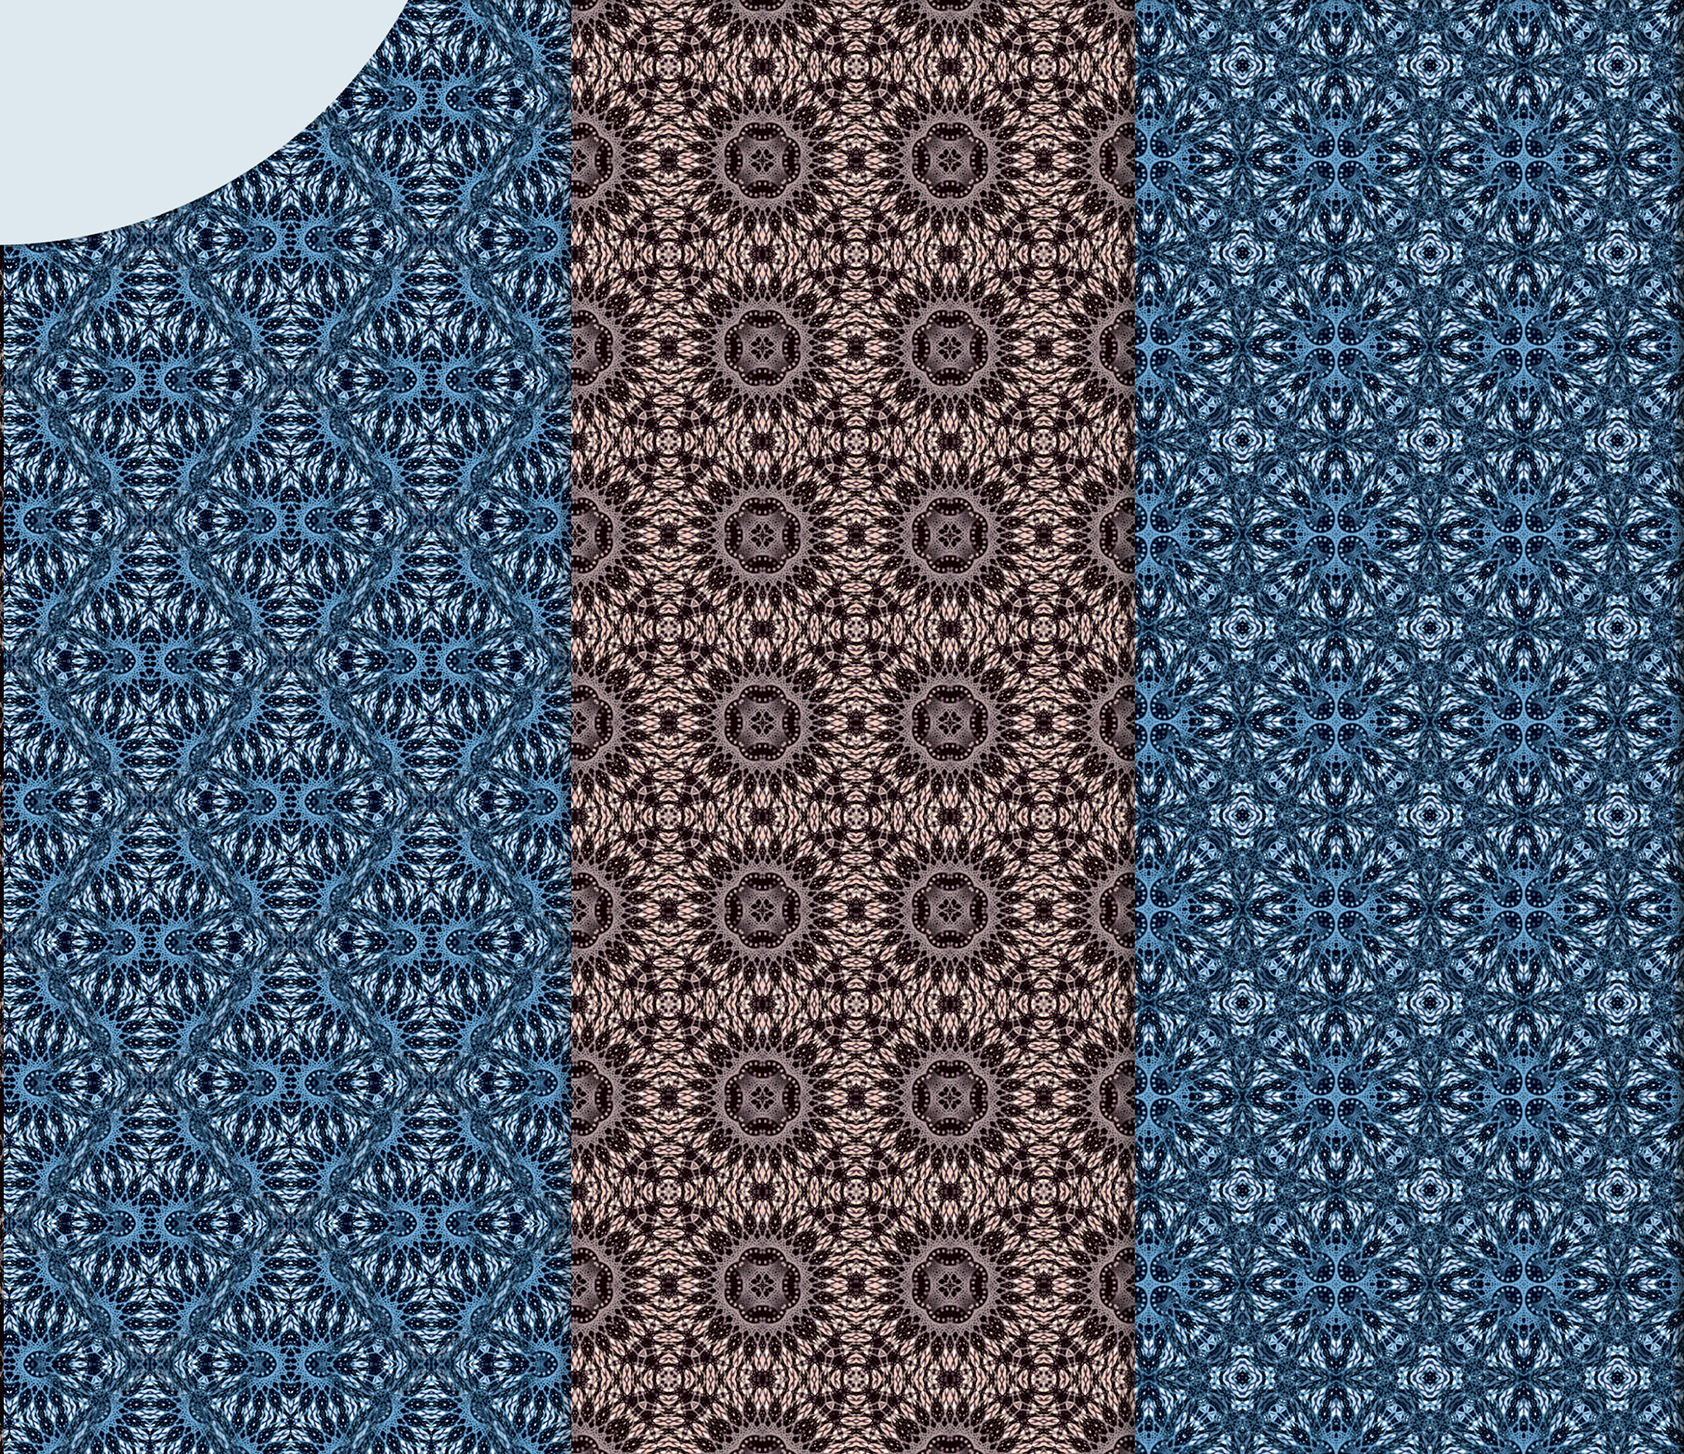 Beige and blue abstract, knitted patterns, Scrapbook Paper example image 5